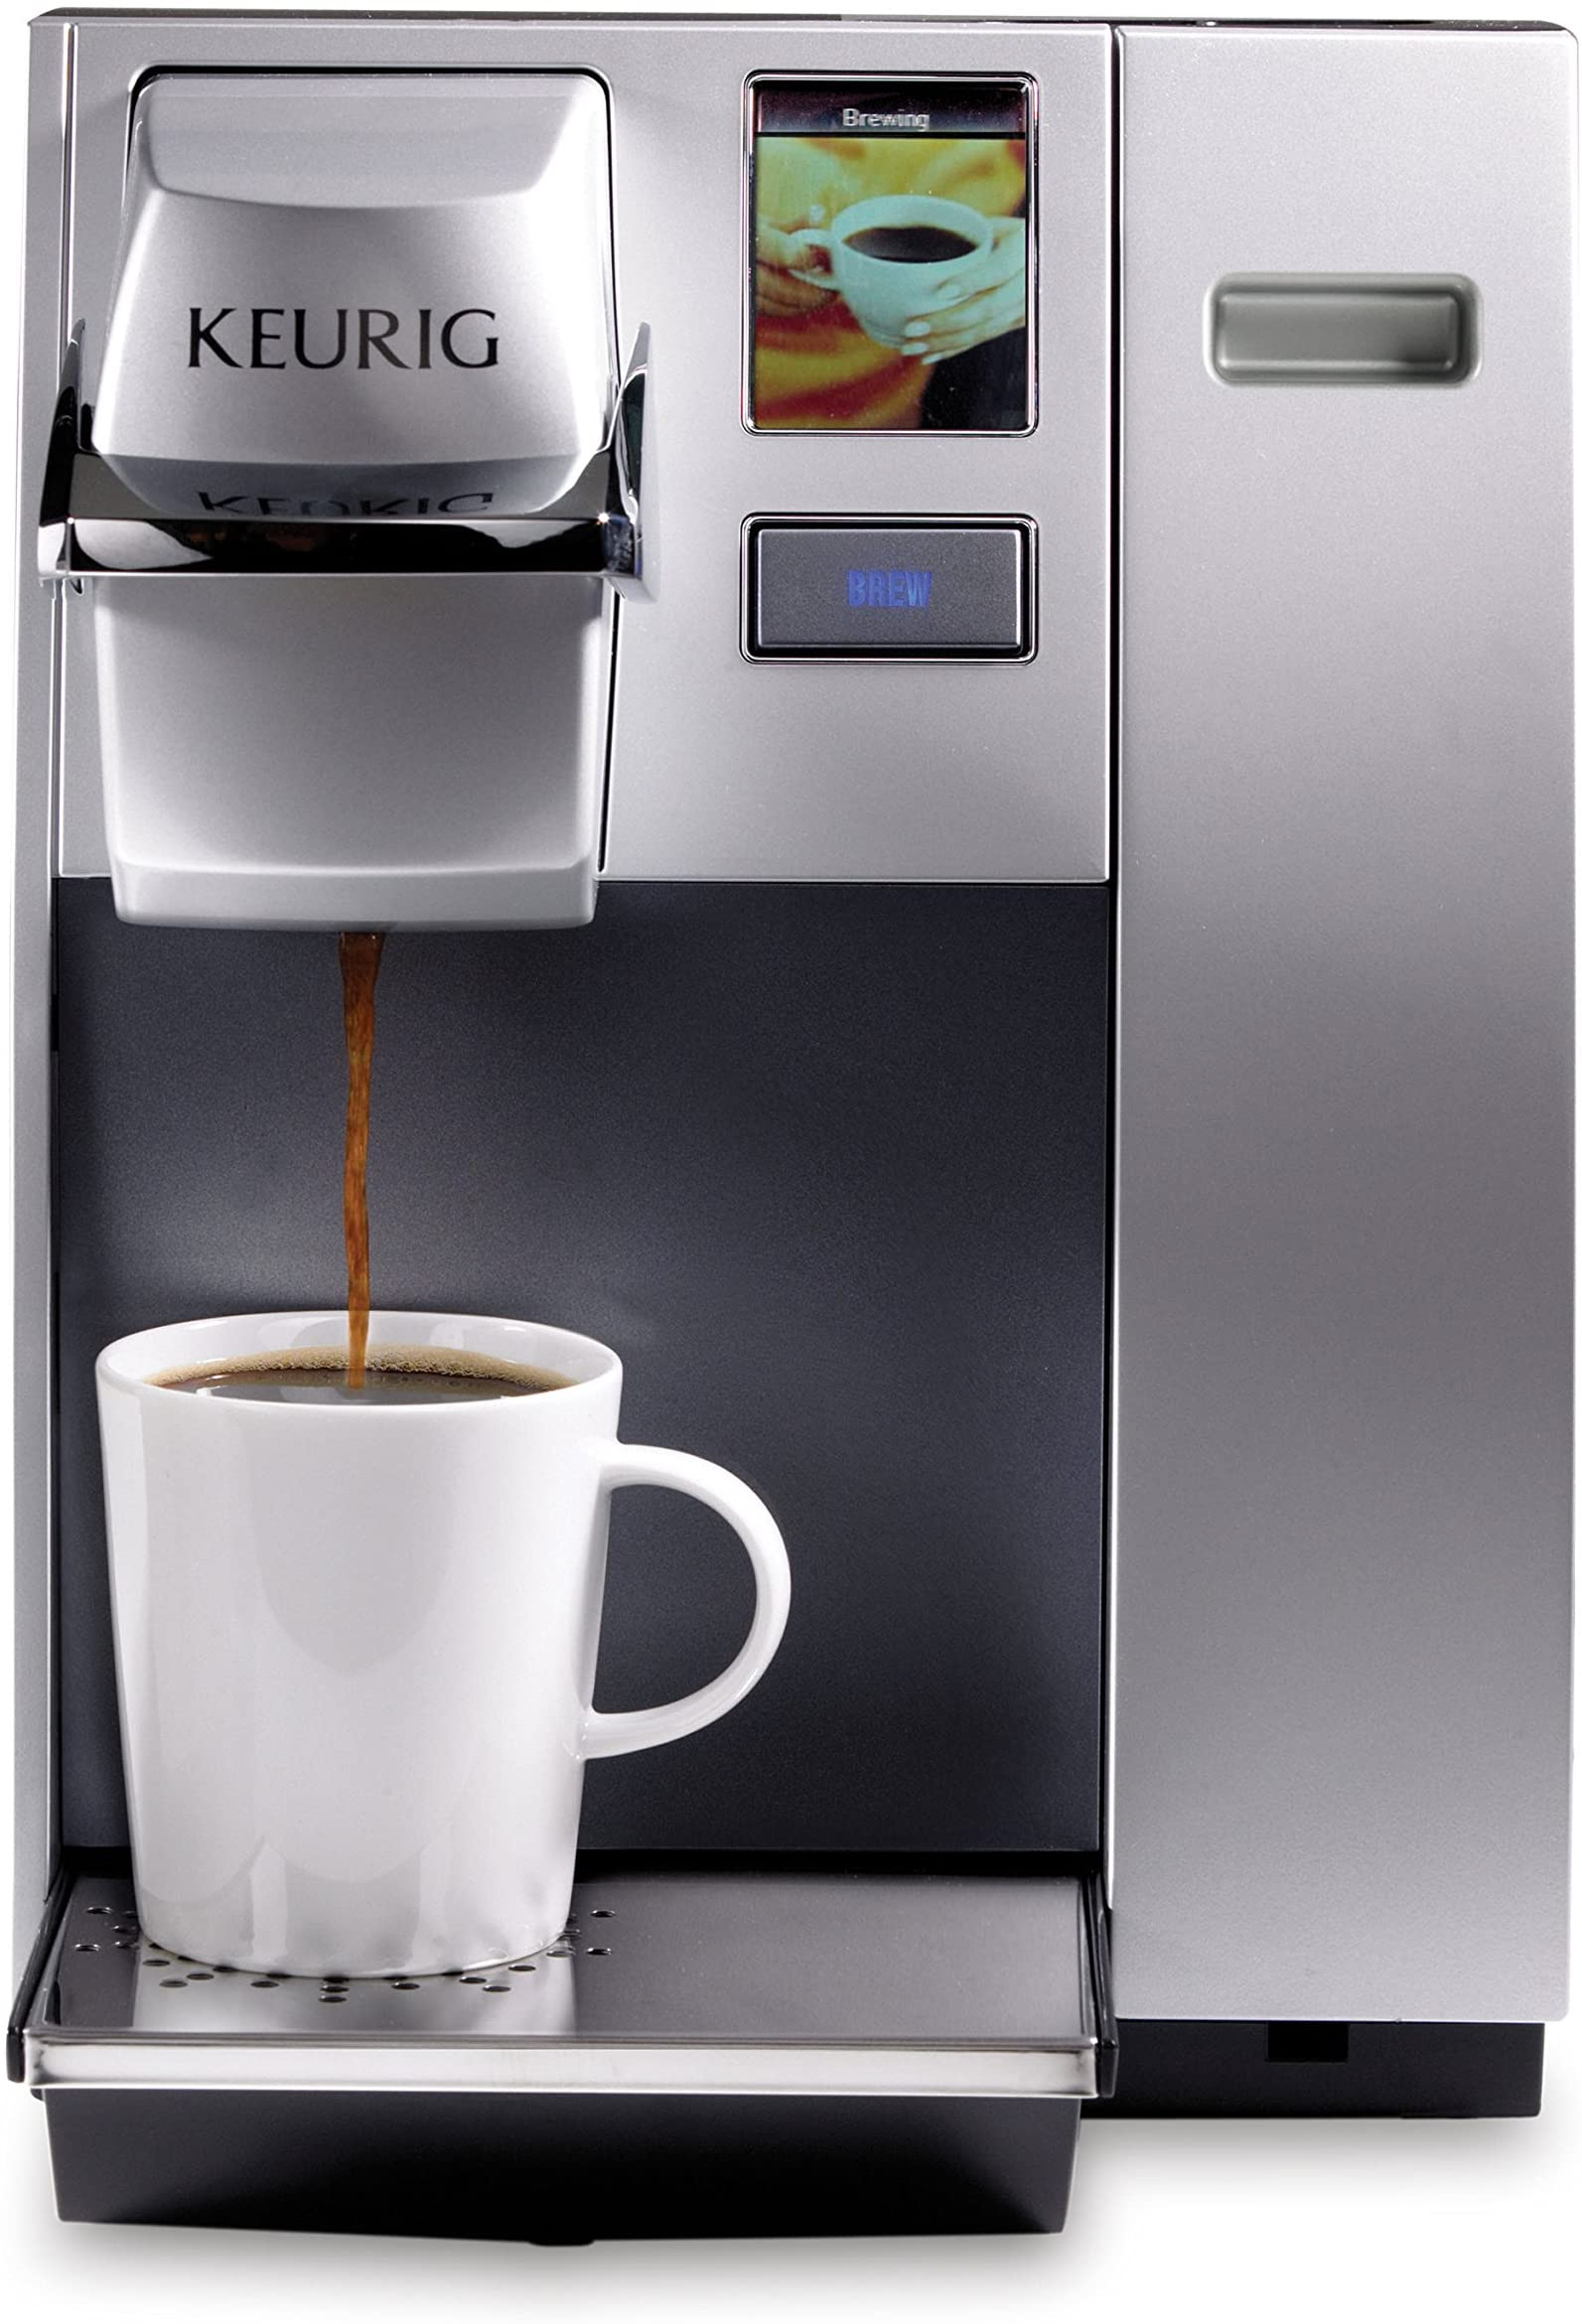 Keurig K155 Office Pro Commercial Coffee Maker, Single Serve K-Cup Pod Coffee Brewer, Silver, Extra Large 90 Oz. Water Reservoir